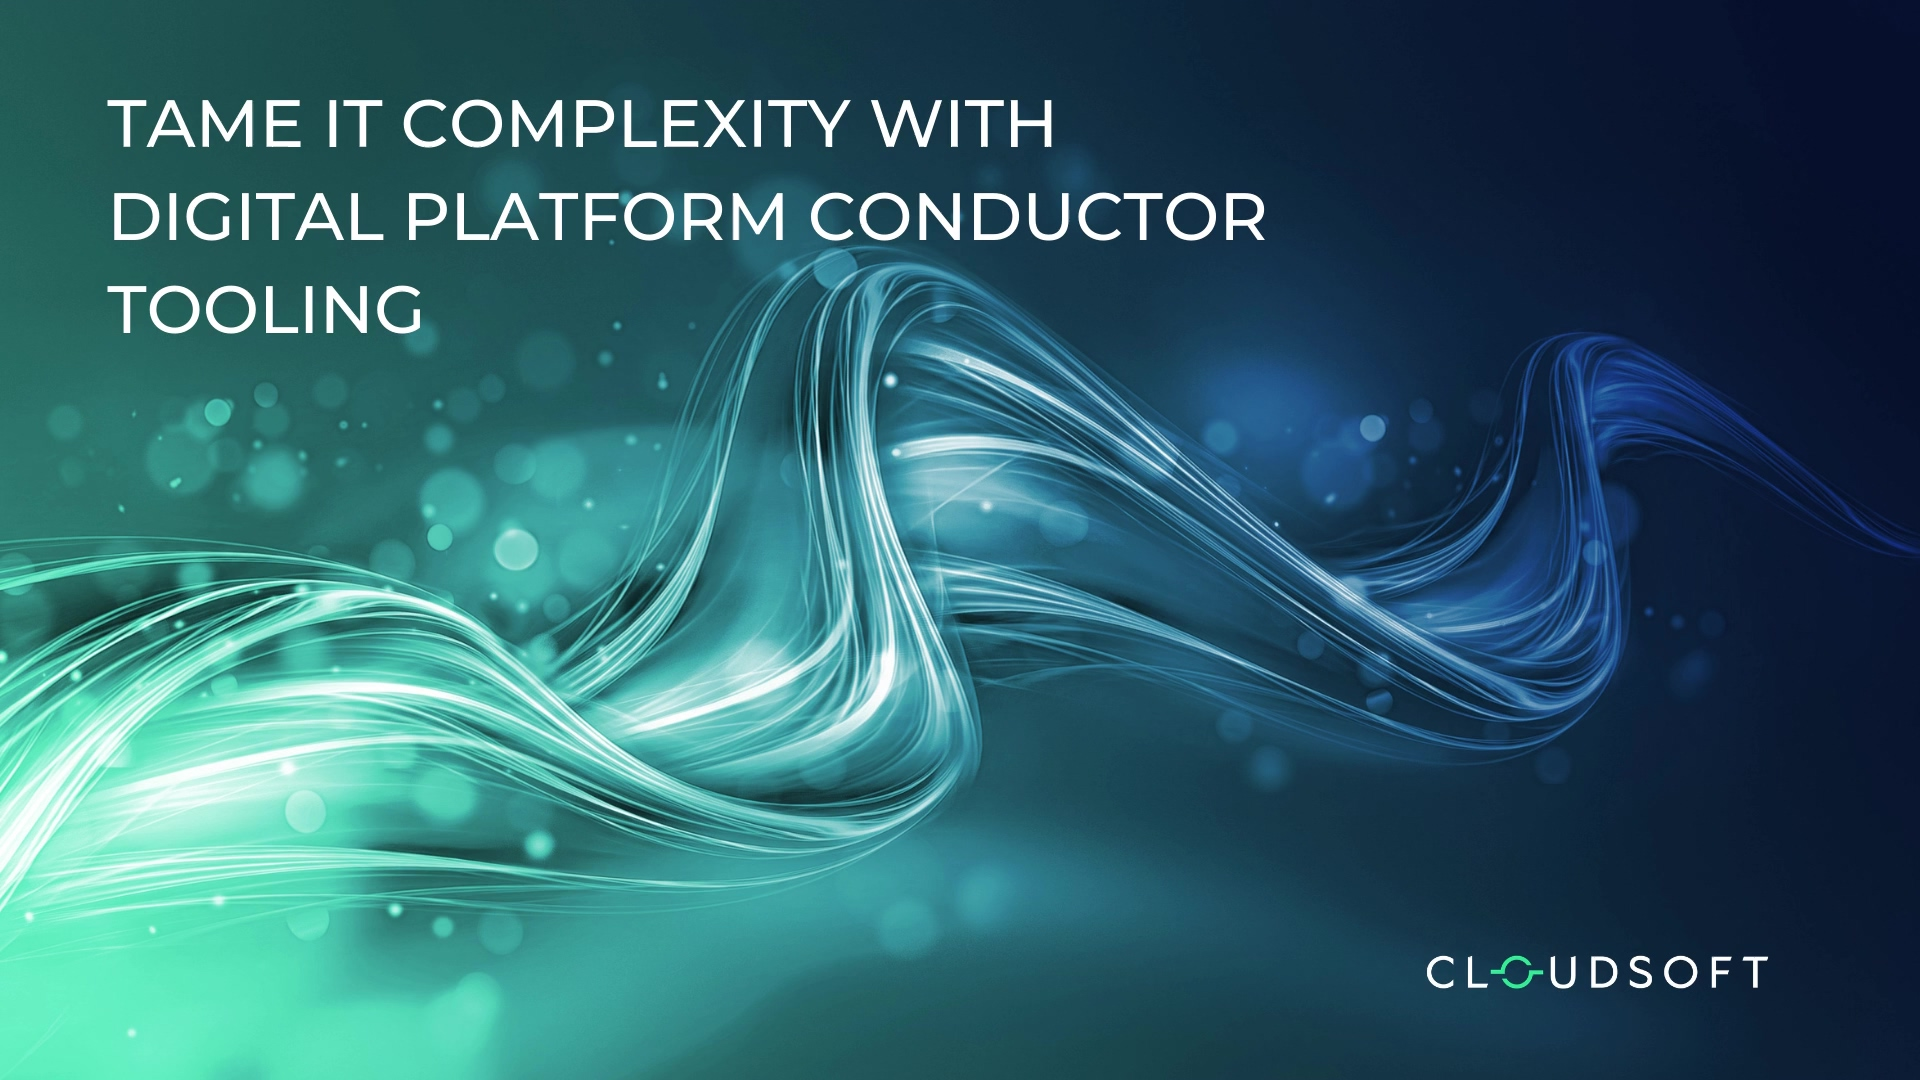 Tame IT complexity with DPCs